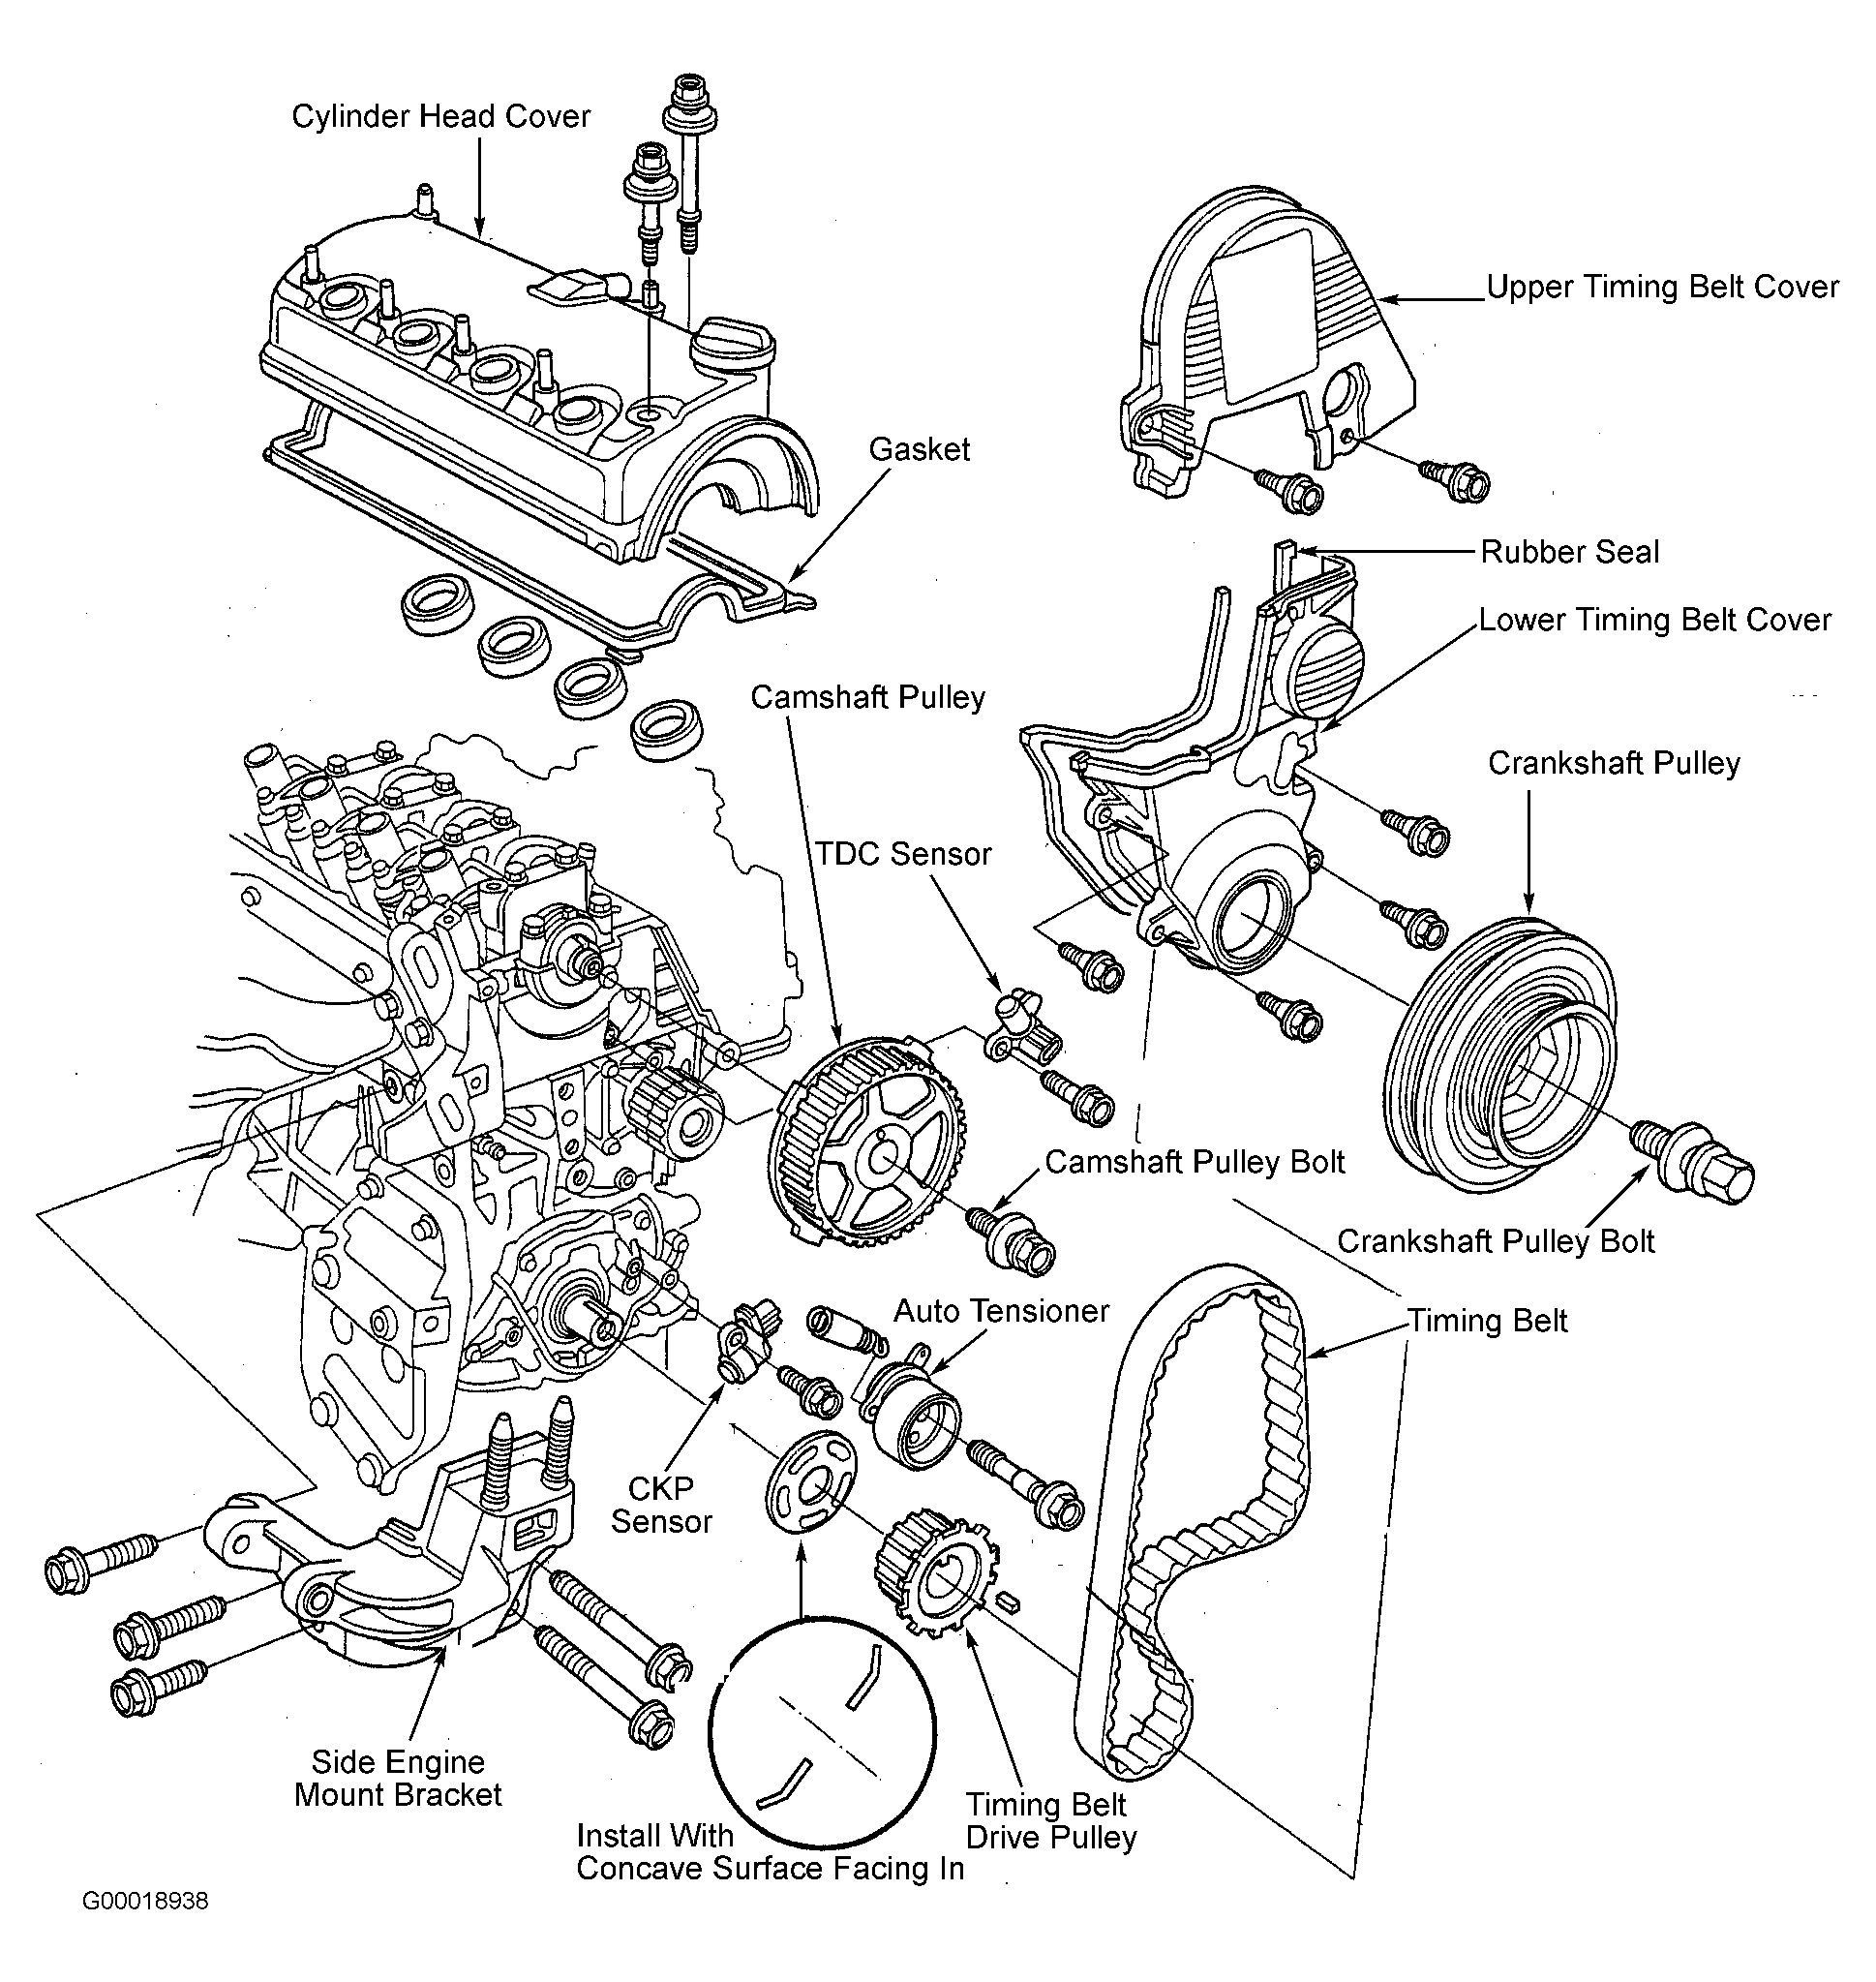 Honda Crv Fuse Box Diagram